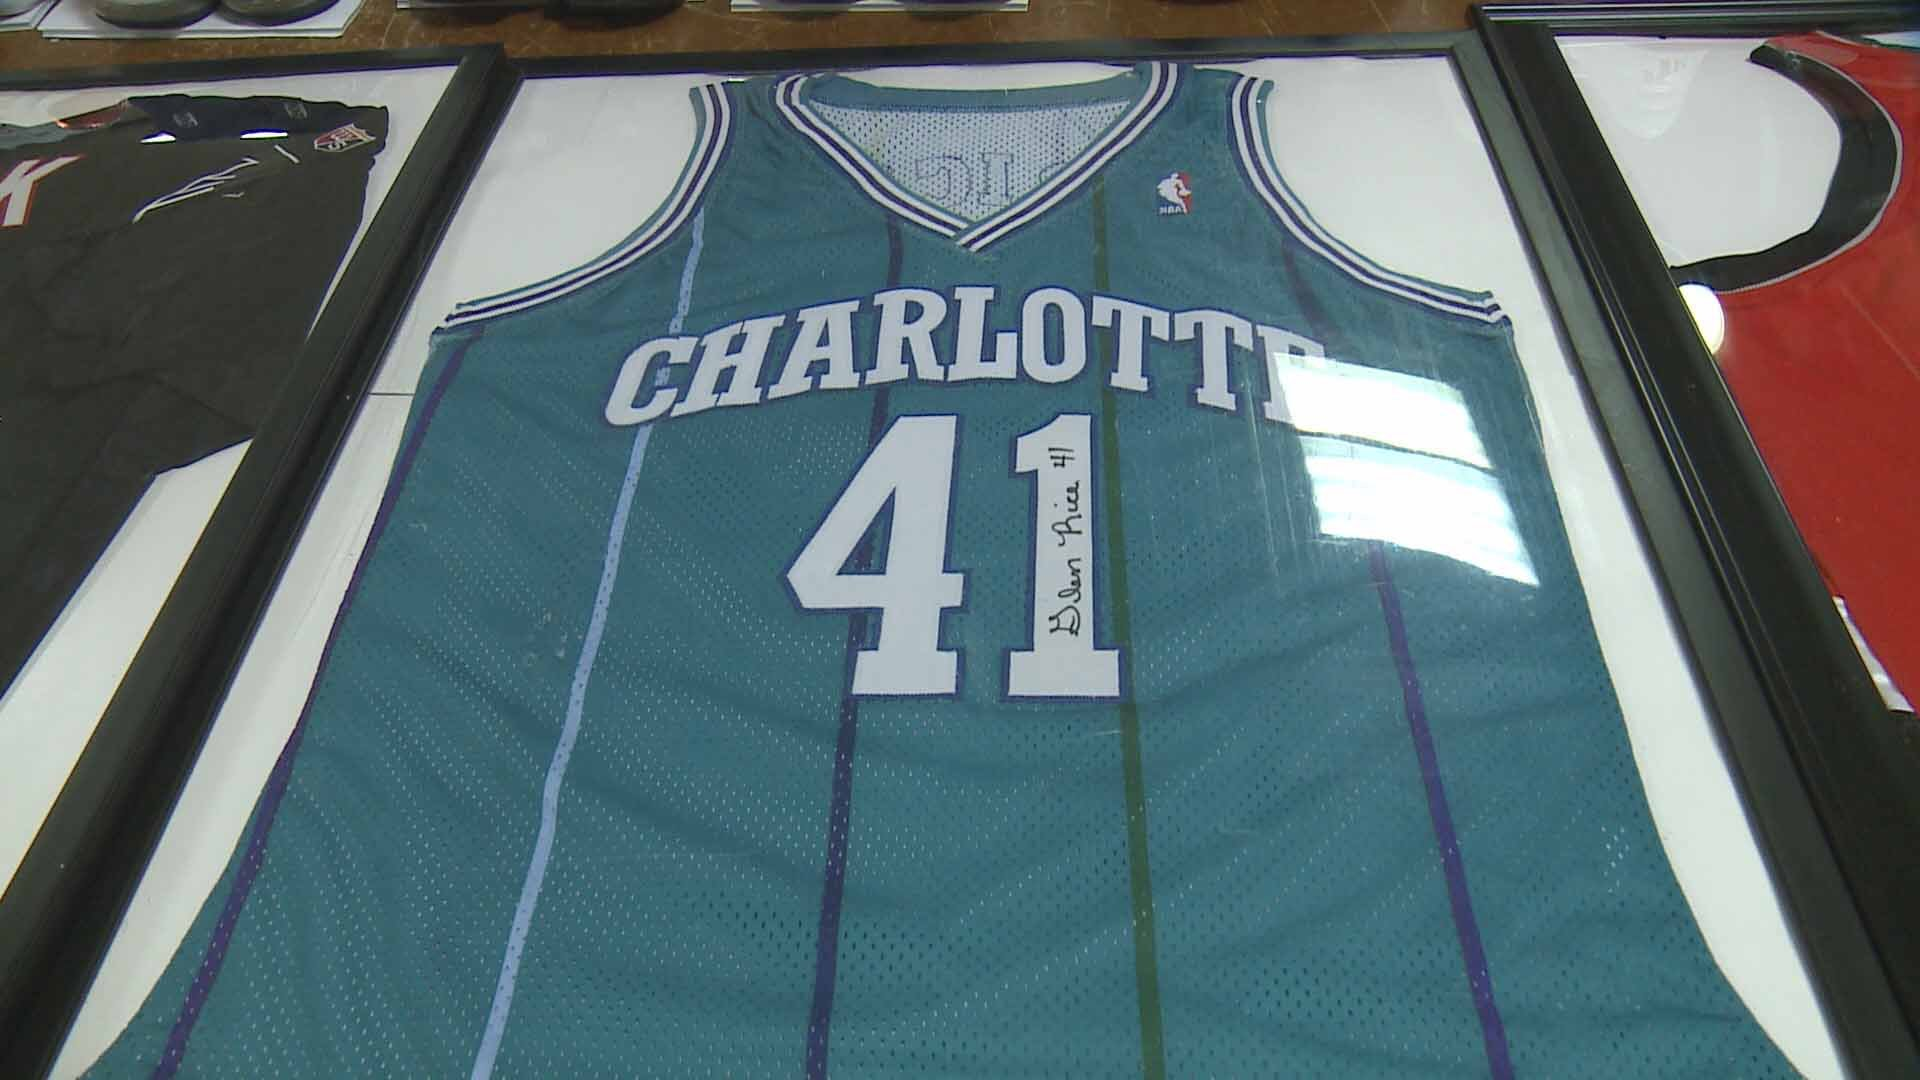 This item was auctioned off as part of an effort to help former NBA star Darius Miles out of debt. Credit: KMOV